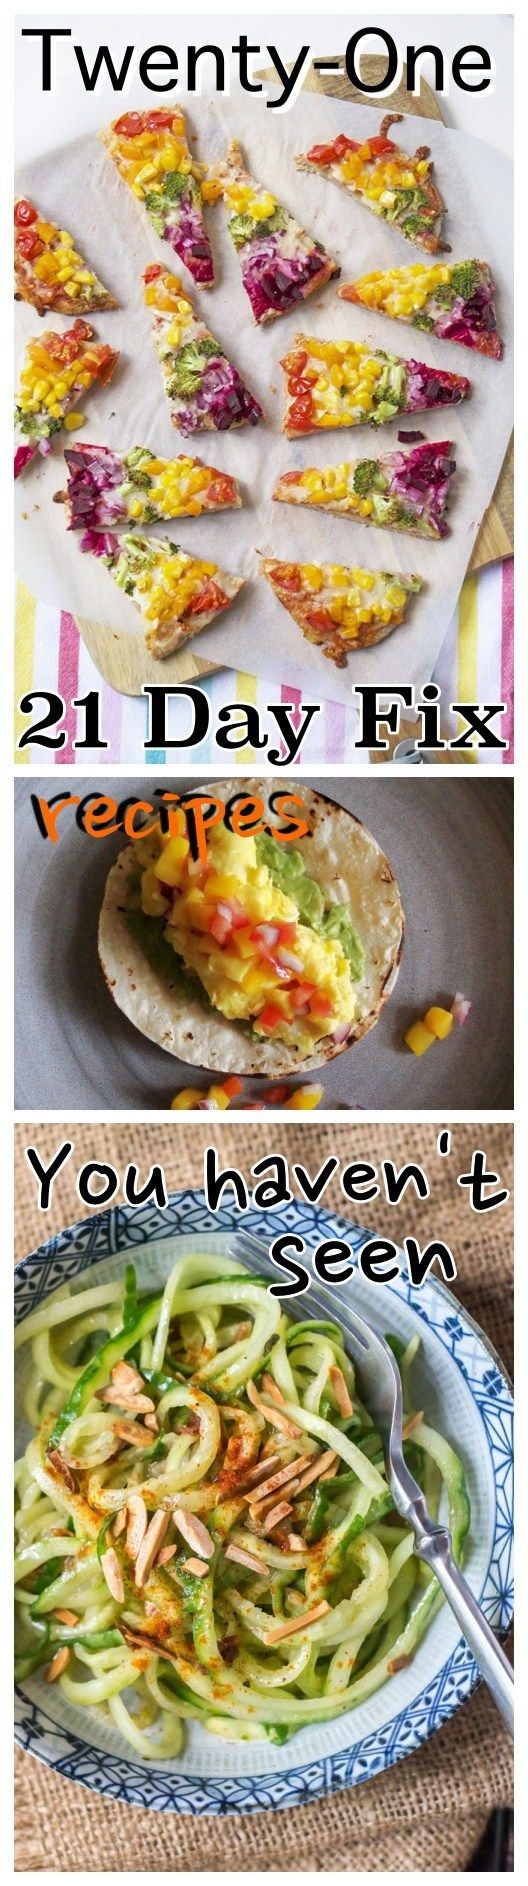 Twenty-one 21 Day Fix Recipes You Haven't Seen! You have to see them!